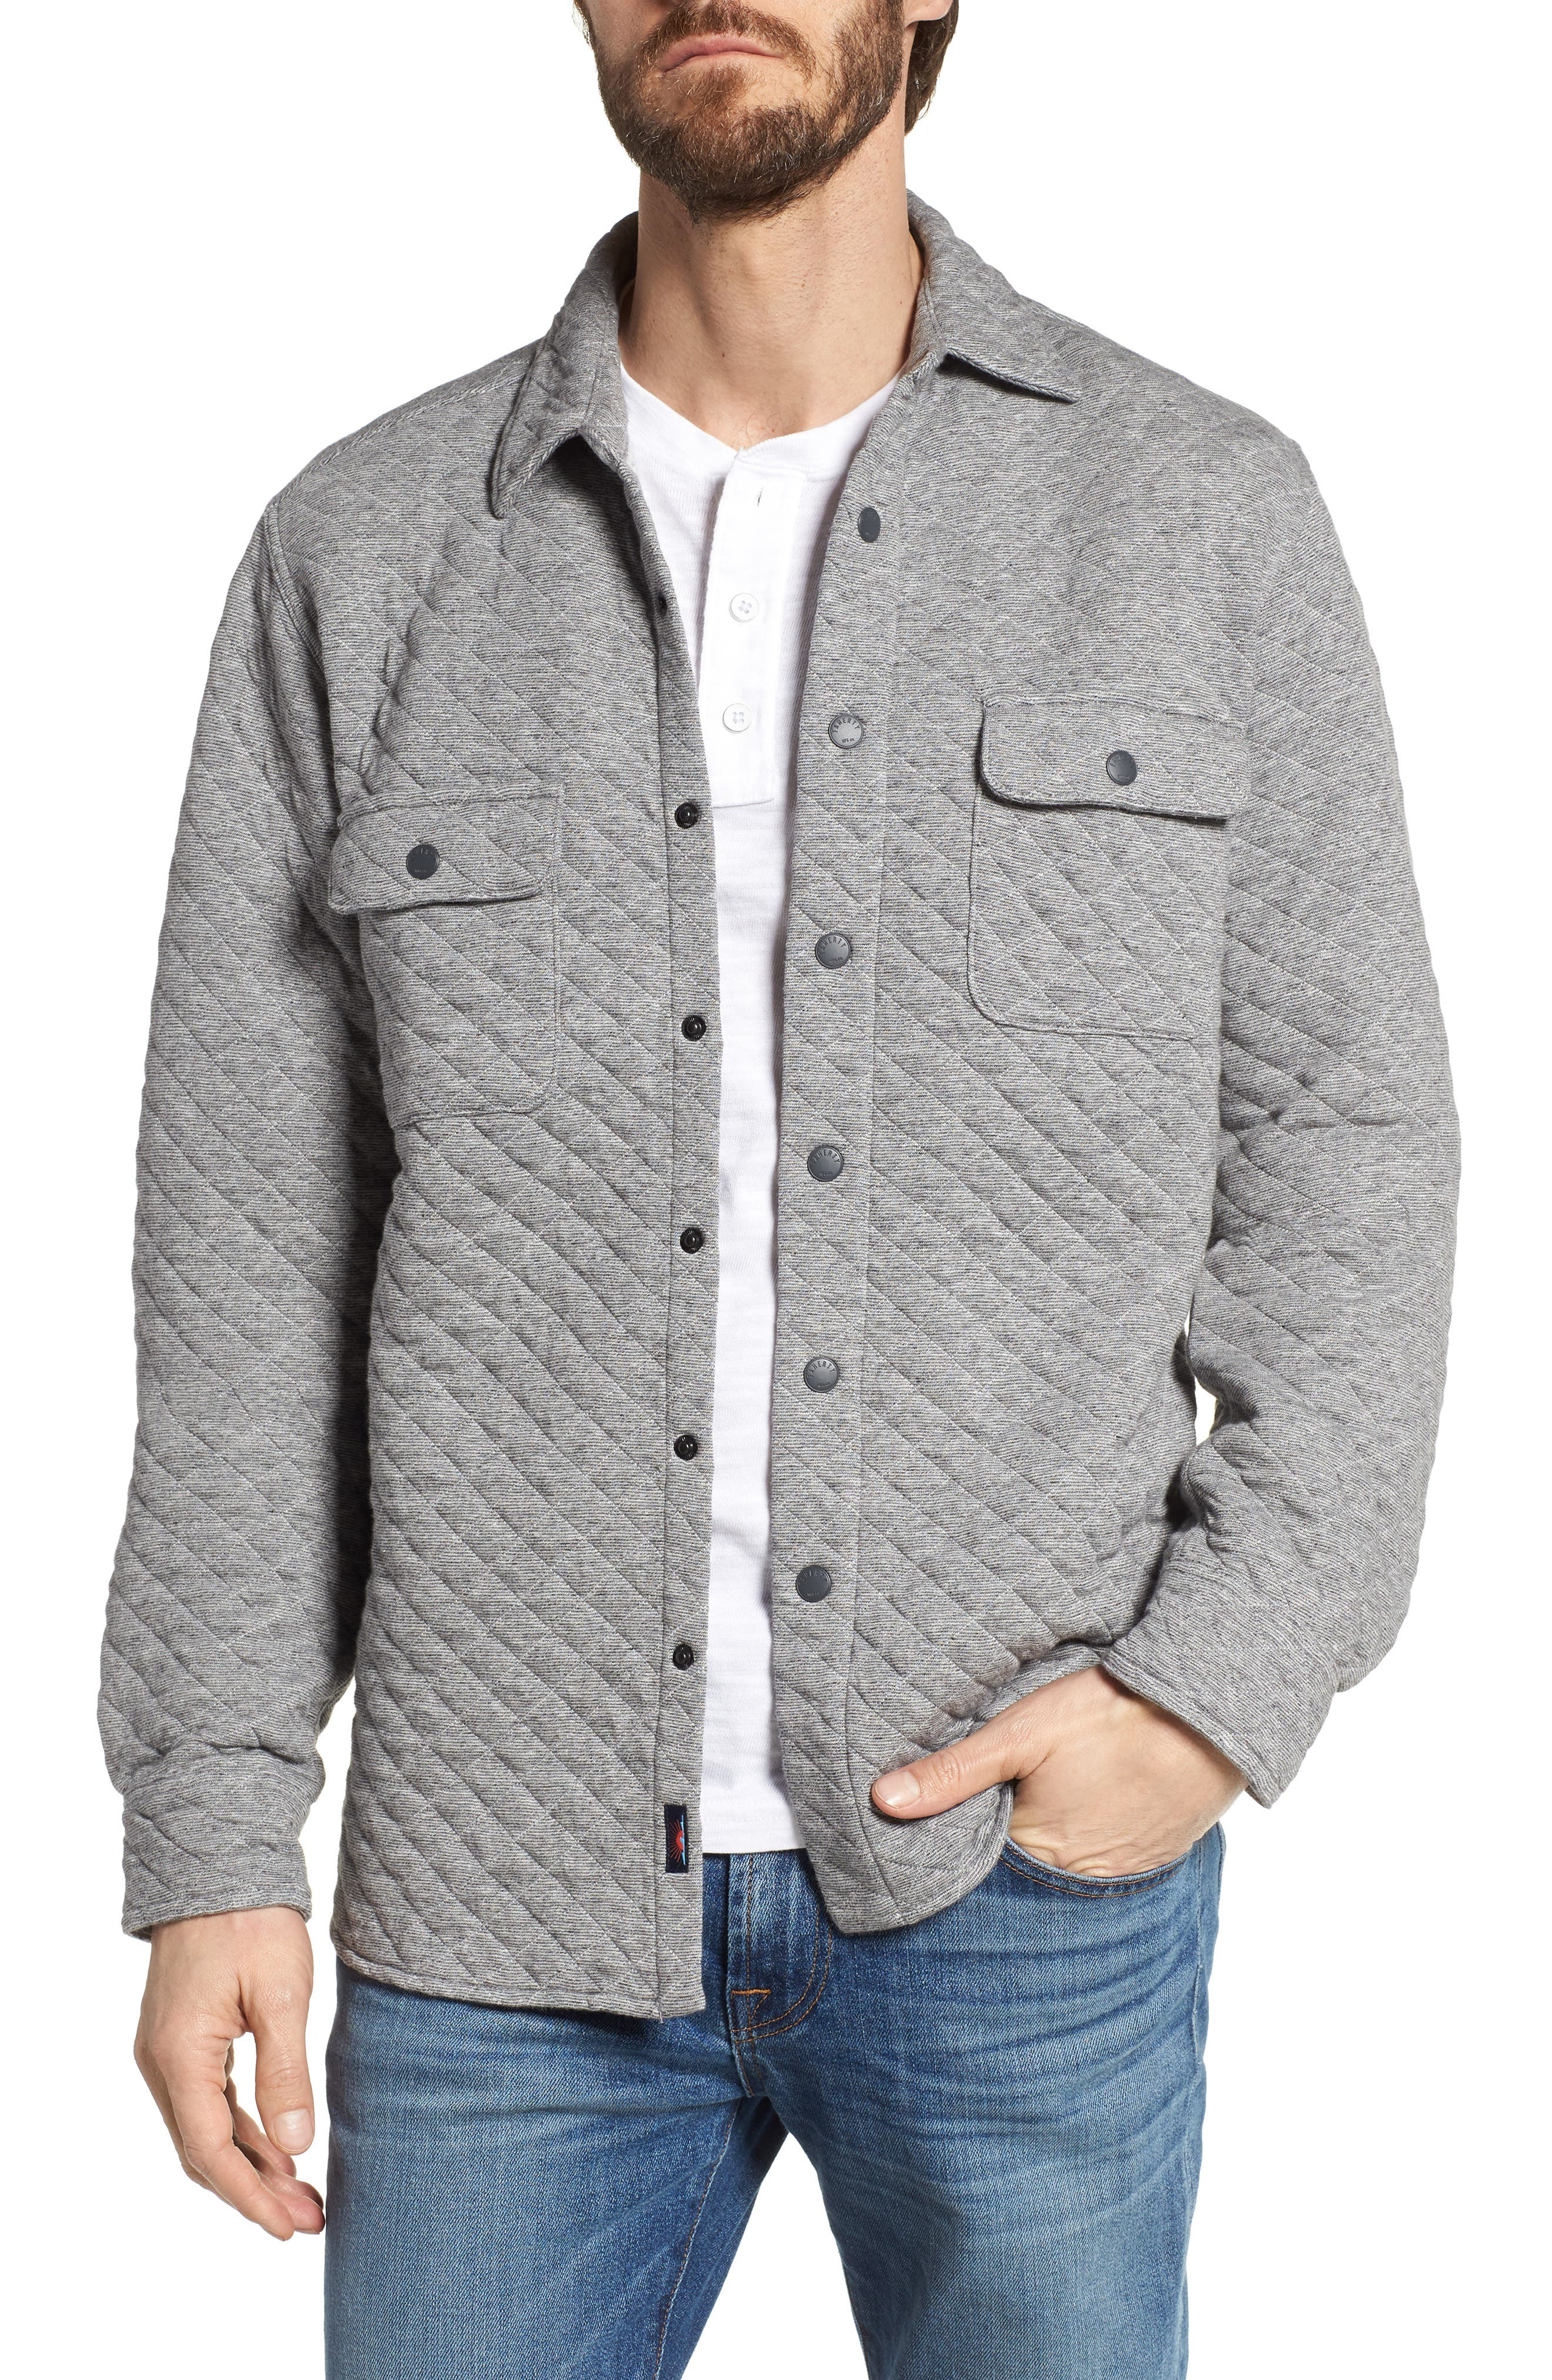 Alternate Image 1 Selected - Faherty Belmar Quilted Snap Shirt Jacket